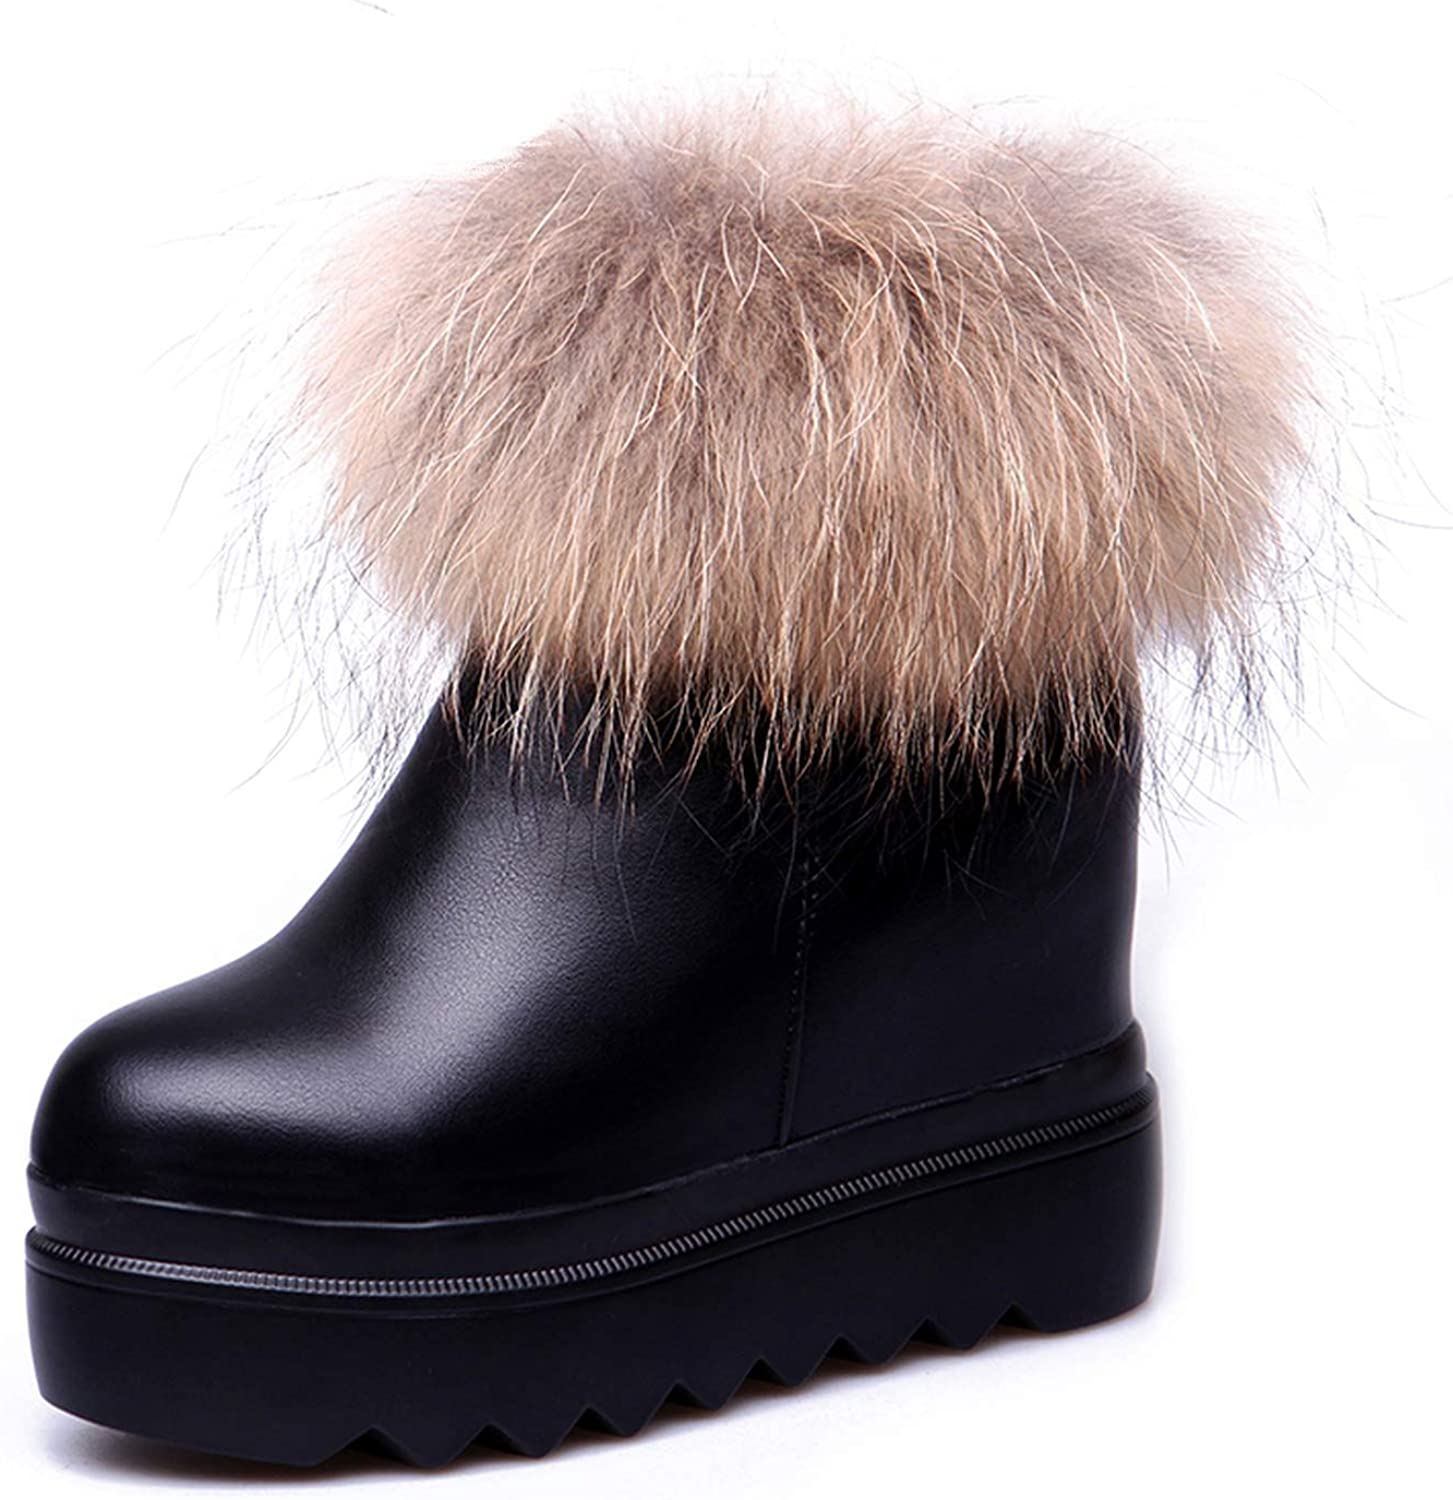 Ankel Boots Platform Woman Fur Wedge Cotton Padded shoes Velvet Boots